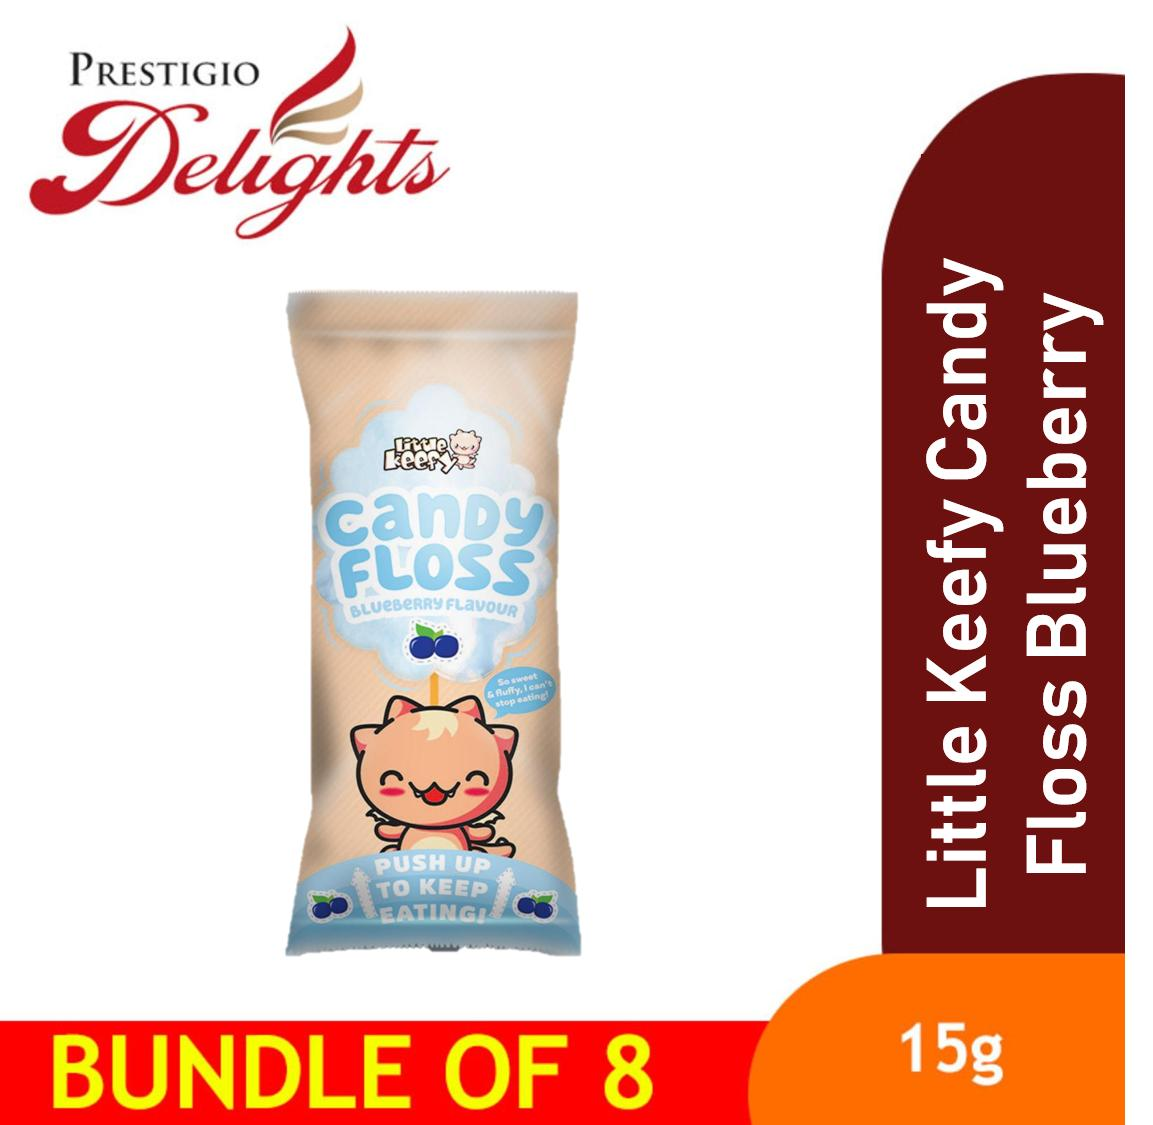 Little Keefy Candy Floss Blueberry Bundle Of 8 By Prestigio Delights.